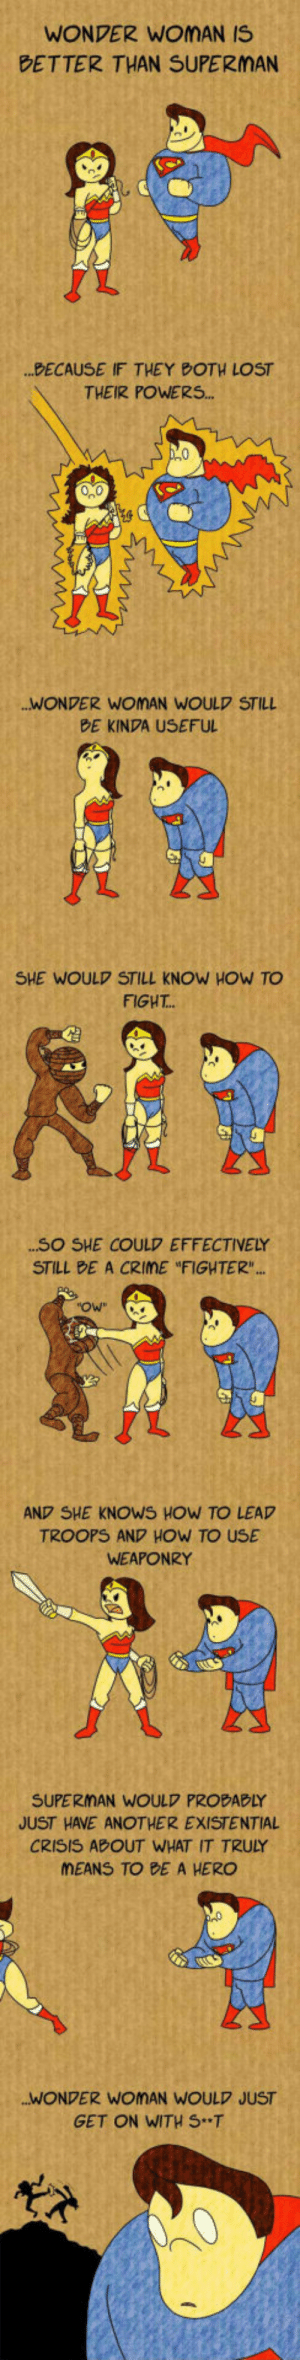 "Crime, She Knows, and Superman: WONDER WOMAN IS  BETTER THAN SUPERMAN  ...BECAUSE IF THEY BOTH LOST  THEIR POWER..  ...WONDER WOMAN WOULD STILL  BE KINDA USEFUL  SHE WOULD STILL KNOW HOW TO  FIGHT  SO SHE COULD EFFECTIVELY  STILL BE A CRIME ""FIGHTER""..  ""OW""  AND SHE KNOWS HOW TO LEAD  TROOPS AND HOW TO USE  WEAPONRY  SUPERMAN WOULD PROBABLY  JUST HAVE ANOTHER EXISTENTIAL  CRISIS ABOUT WHAT IT TRULY  MEANS TO BE A HERO  WONDER WOMAN WOULD JUST  GET ON WITH ST Wonder Woman And Super Man Compared."